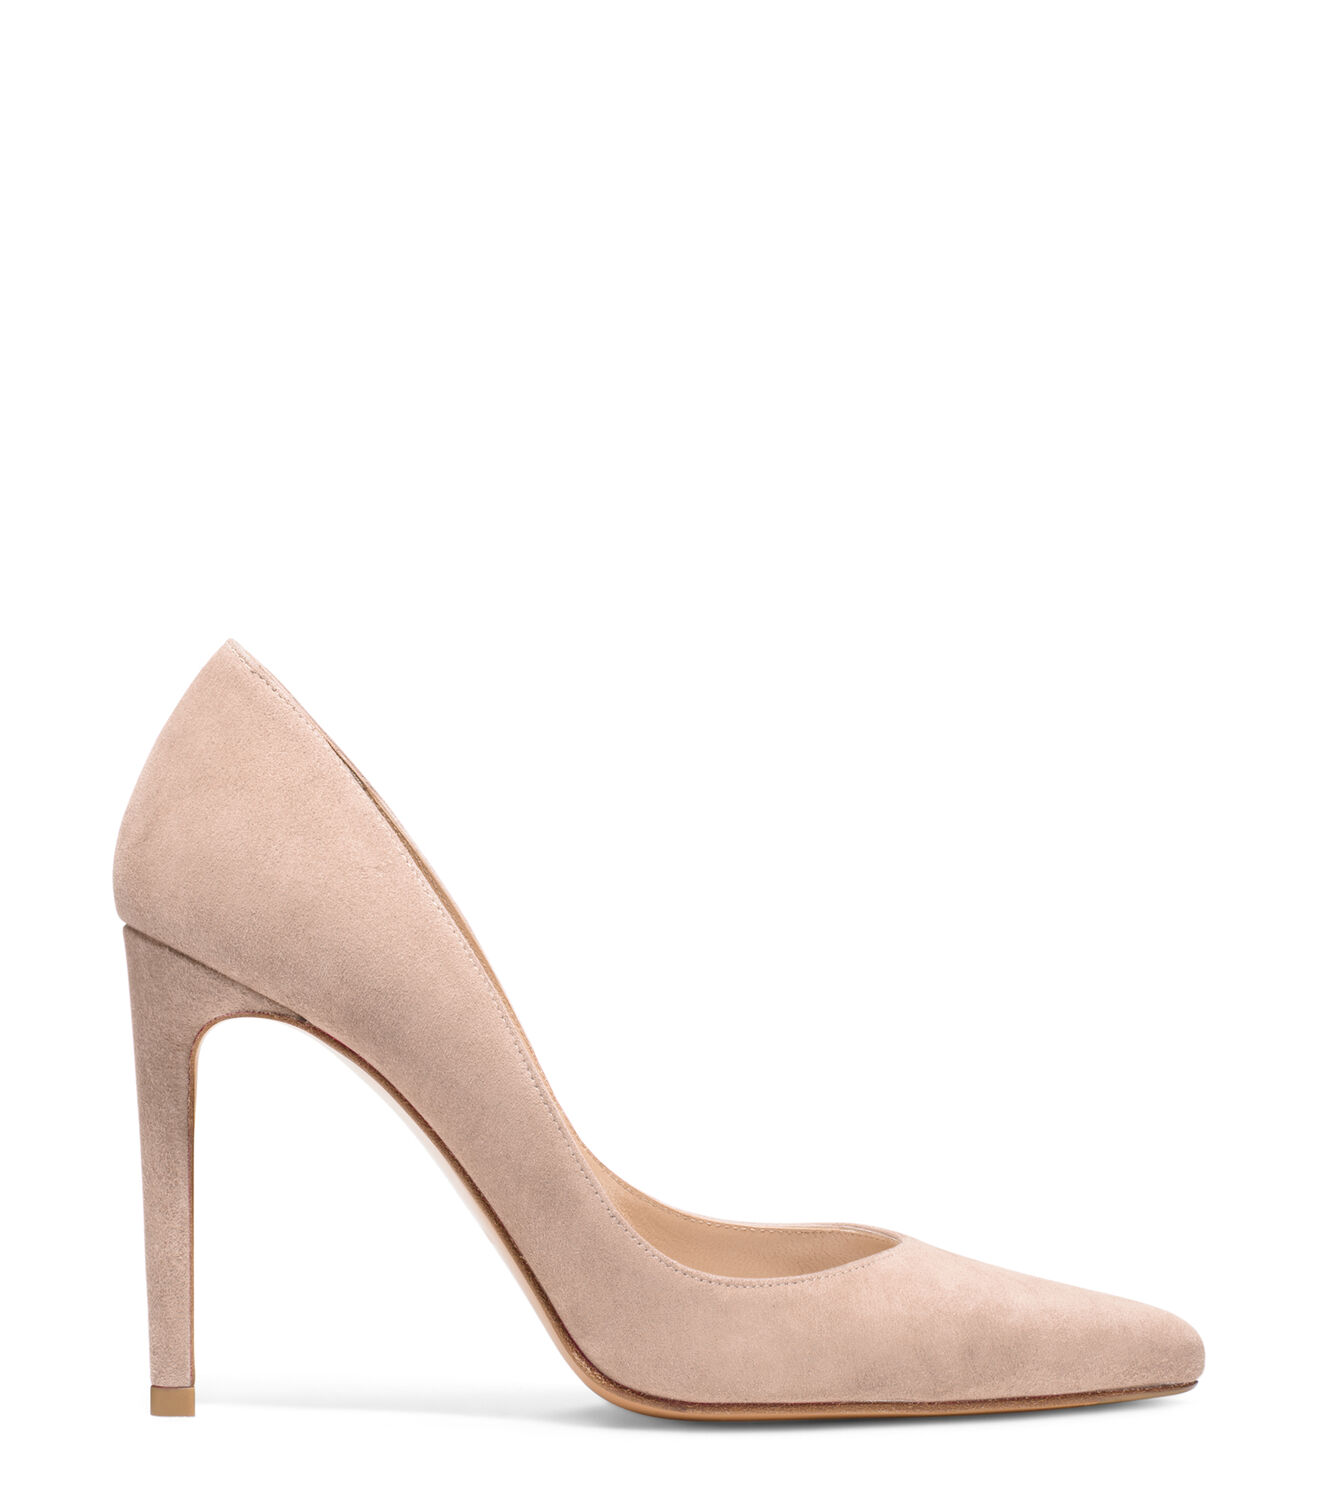 CURVIACurves Ahead: These pointed-toe pumps are sharp, sleek and super-sexy. Crafted from our signature luxe suede, they are distinguished by a unique vamp design; they're cut low on the sides for an elongating and eternally elegant silhouette and will instantly elevate every item in your wardrobe, from leather skinny pants to full-skirted dresses.<br>